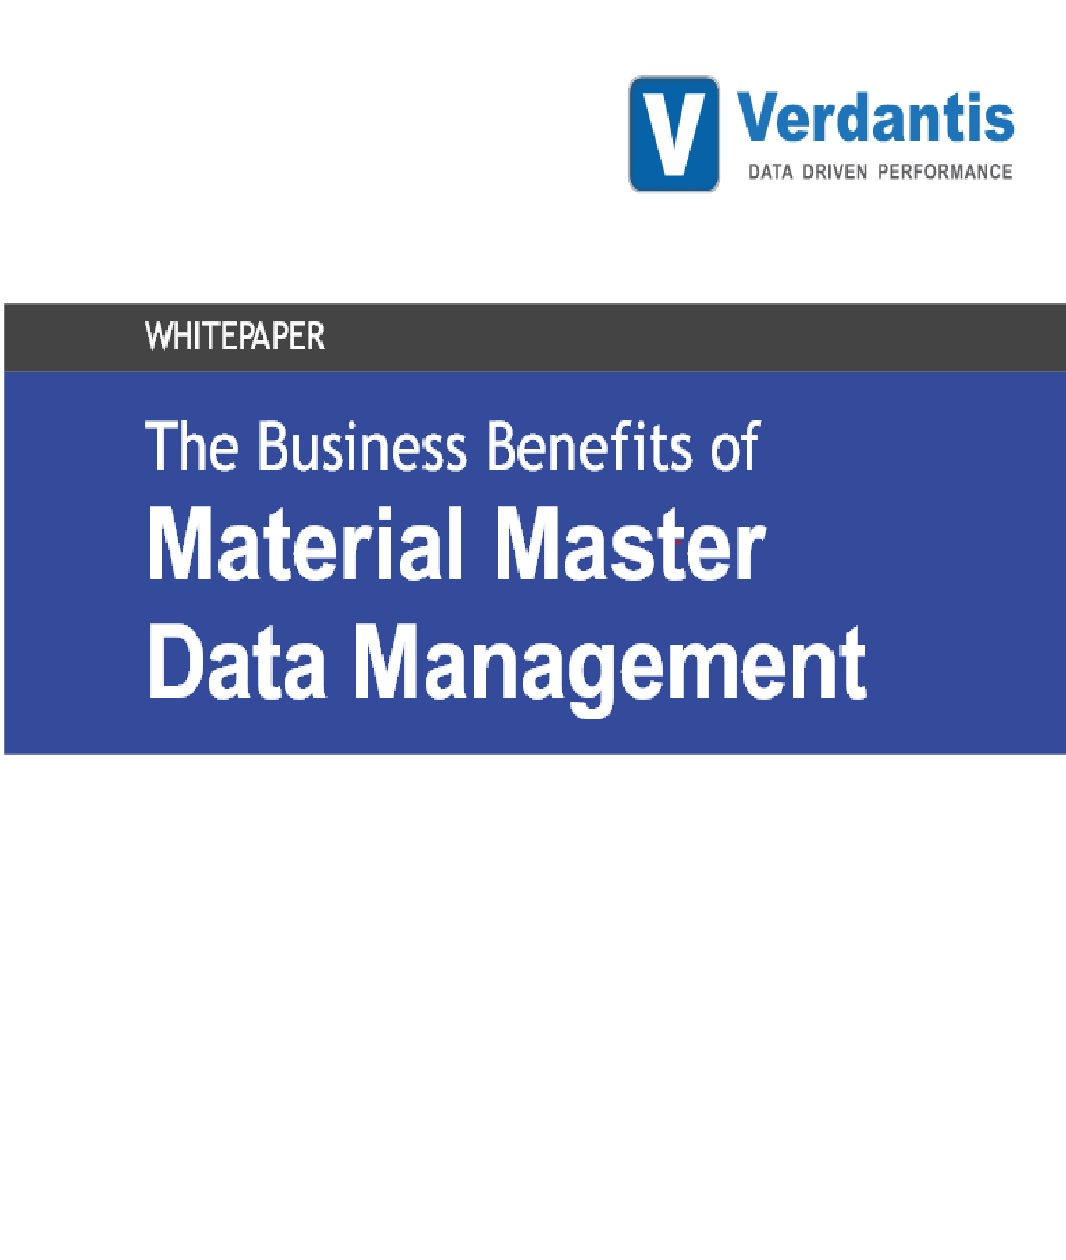 The Business Benefits of Material Master Data Management (MMDM)